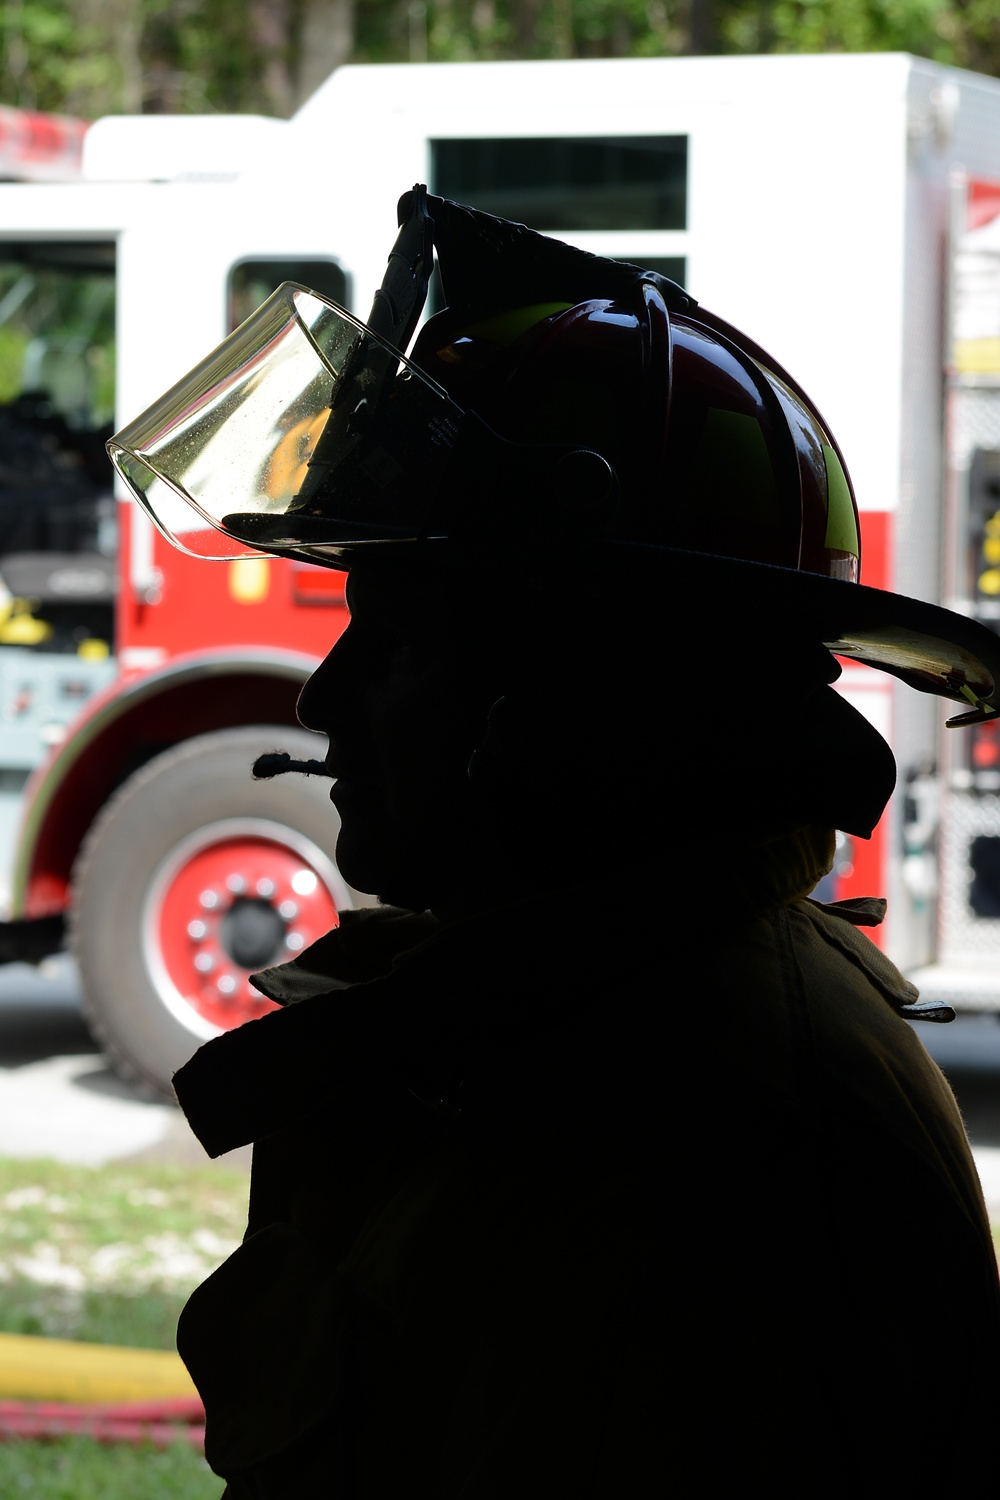 125th Fighter Wing firefighters get hands-on training at Naval Air Station Jacksonville